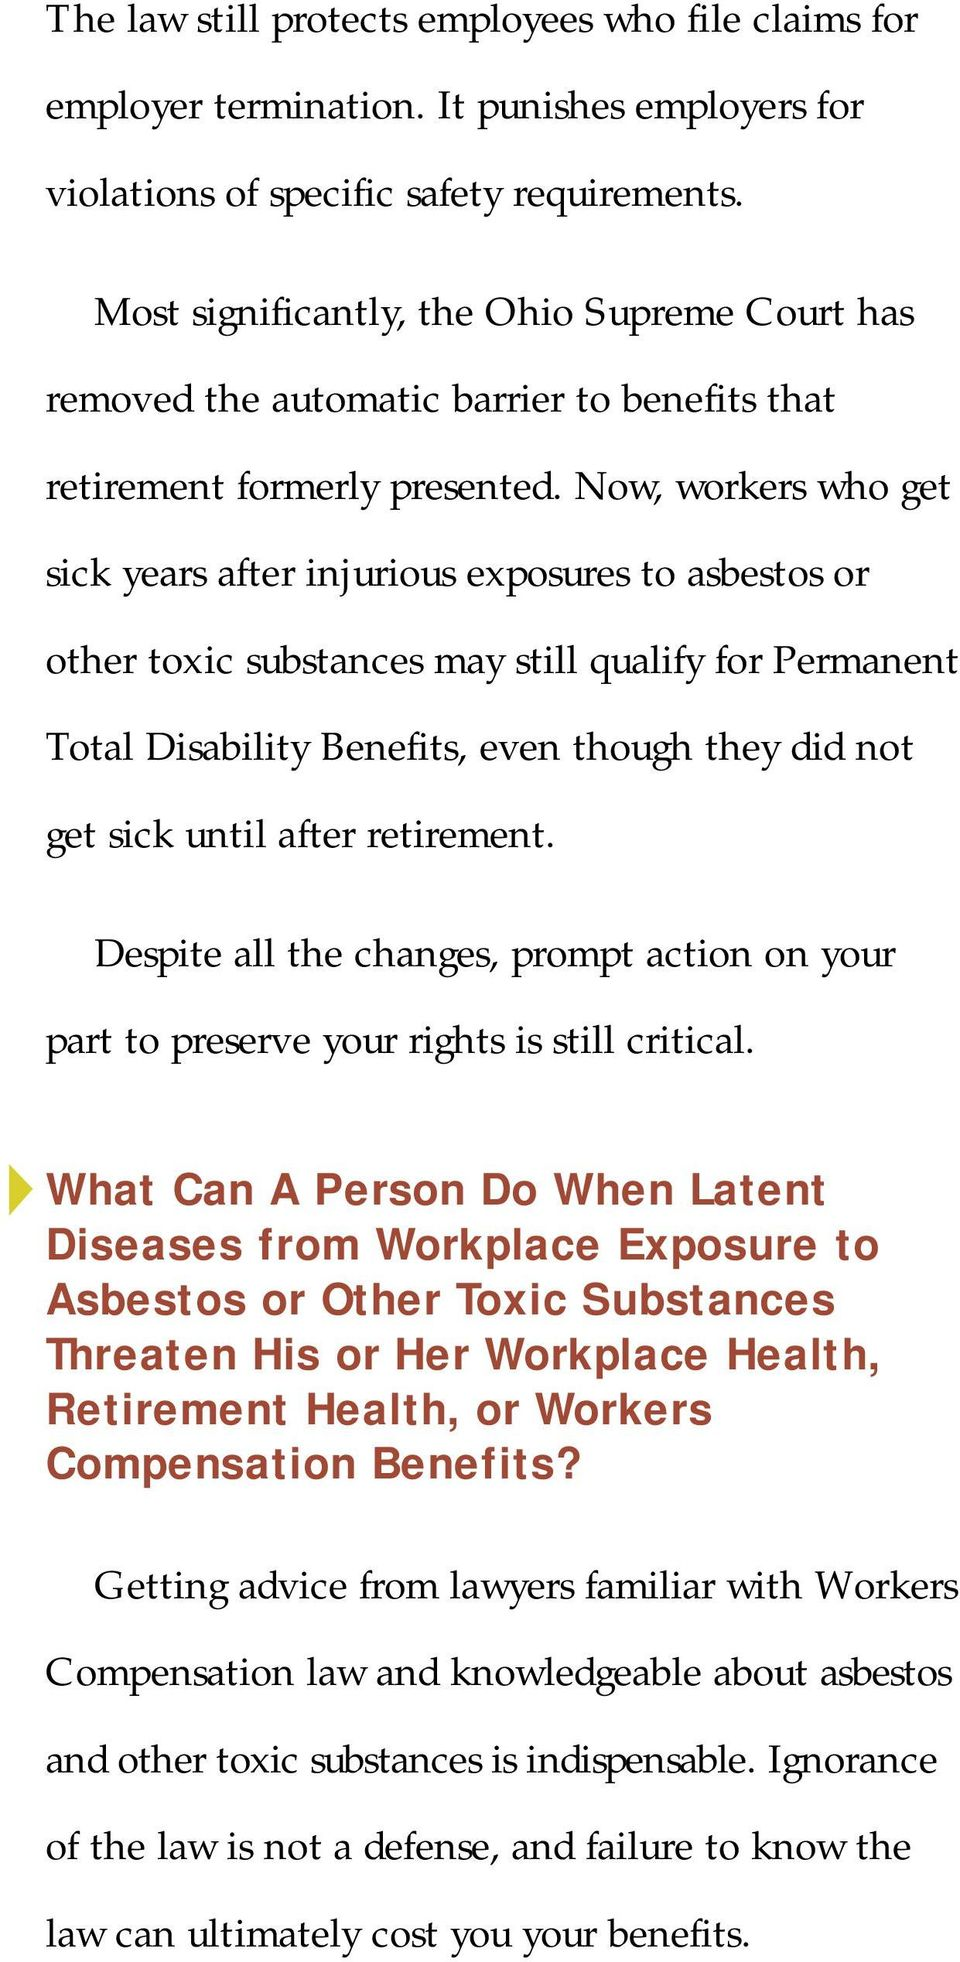 Now, workers who get sick years after injurious exposures to asbestos or other toxic substances may still qualify for Permanent Total Disability Benefits, even though they did not get sick until